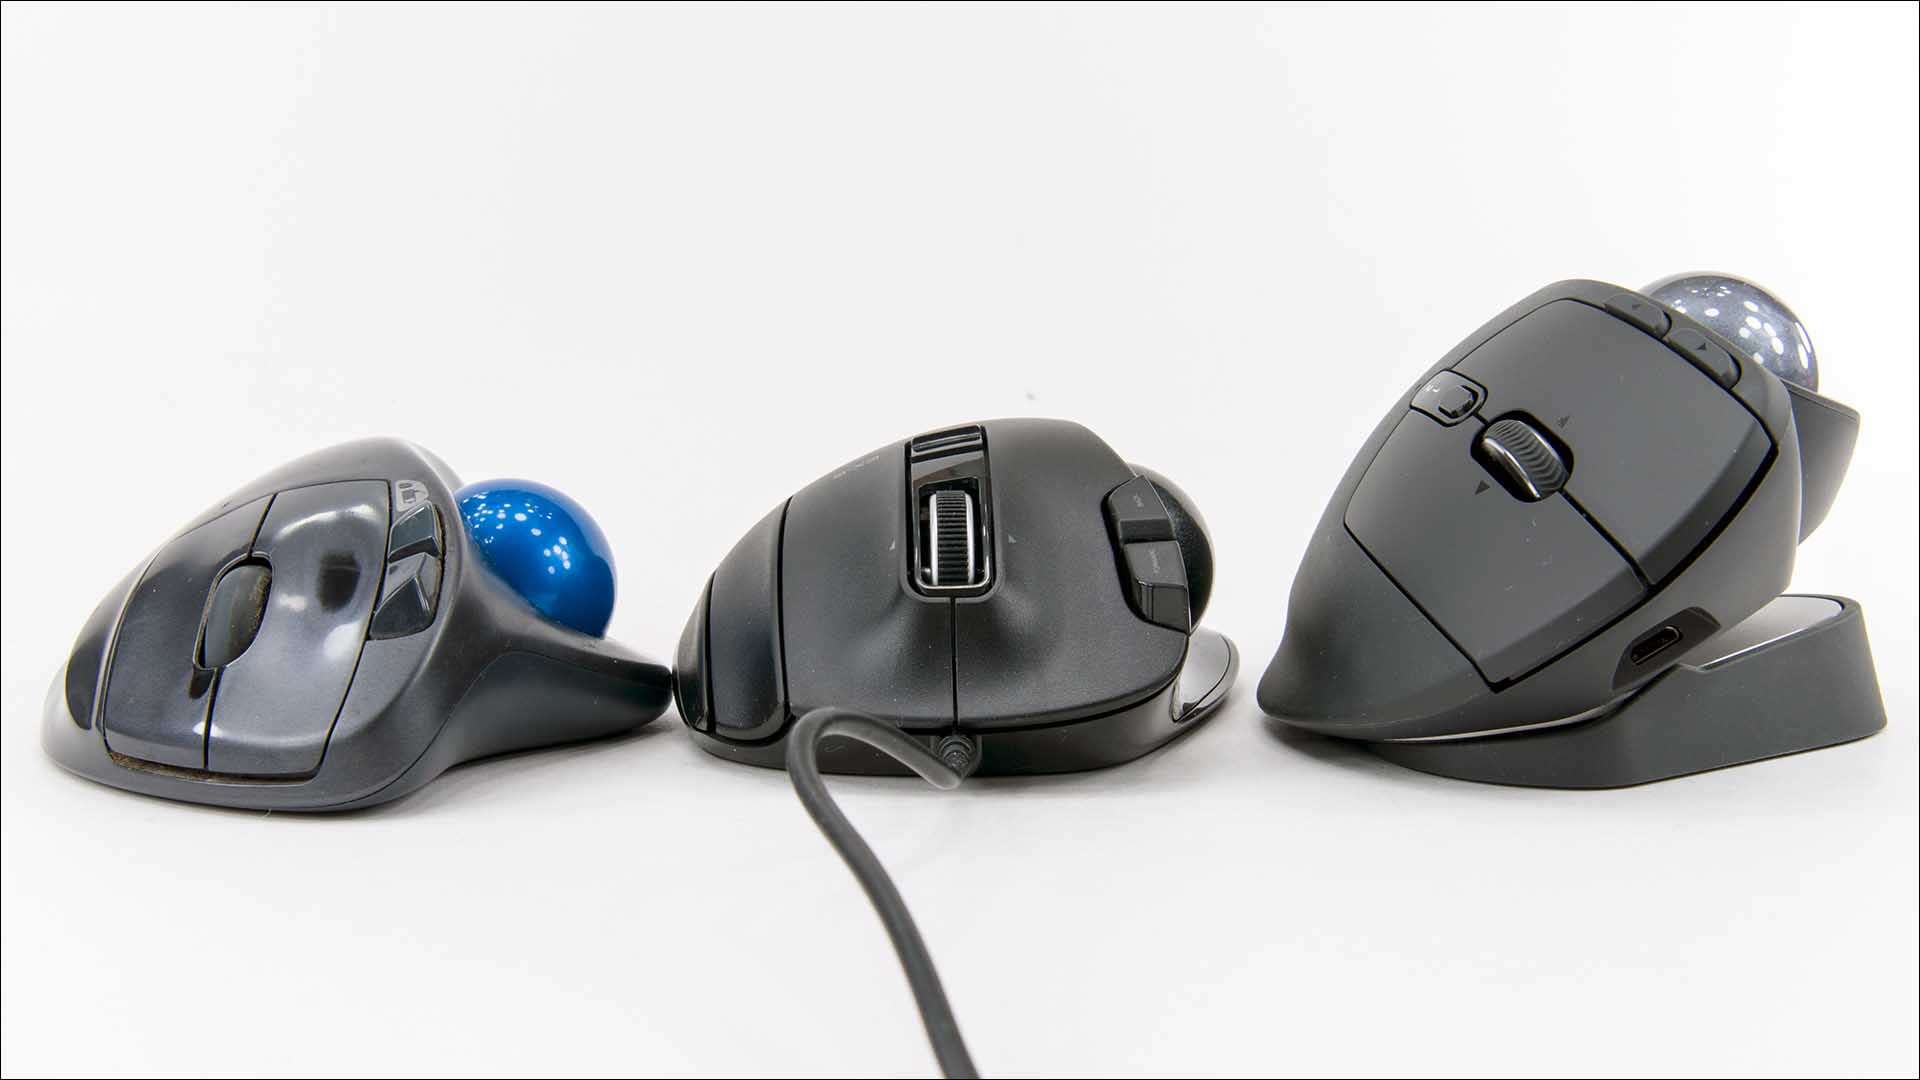 c80e238a00f Logitech MX Ergo & MX Ergo Plus vs M570 vs ELECOM: The Battle of the ...